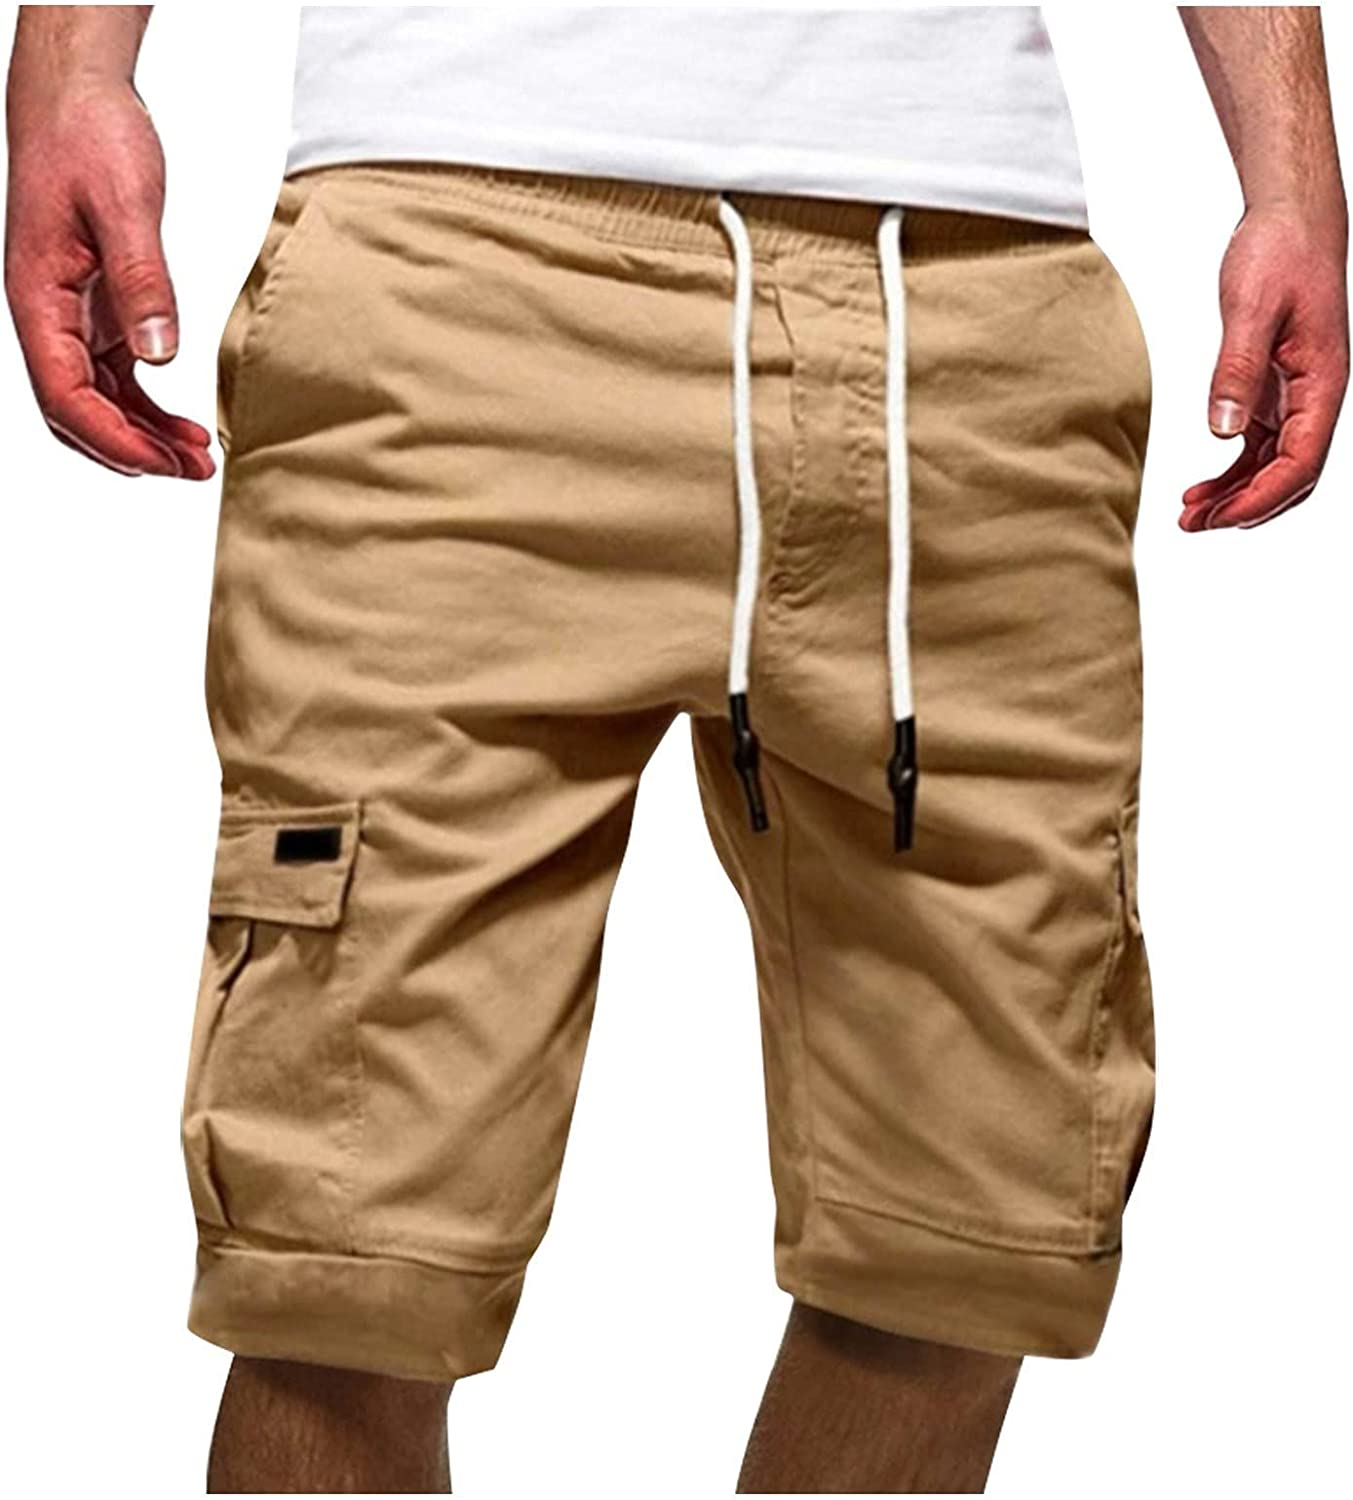 DXYDSC Men's Summer Casual Classic Relaxed Fit Flex Tooling Sports Shorts Five Point Pant